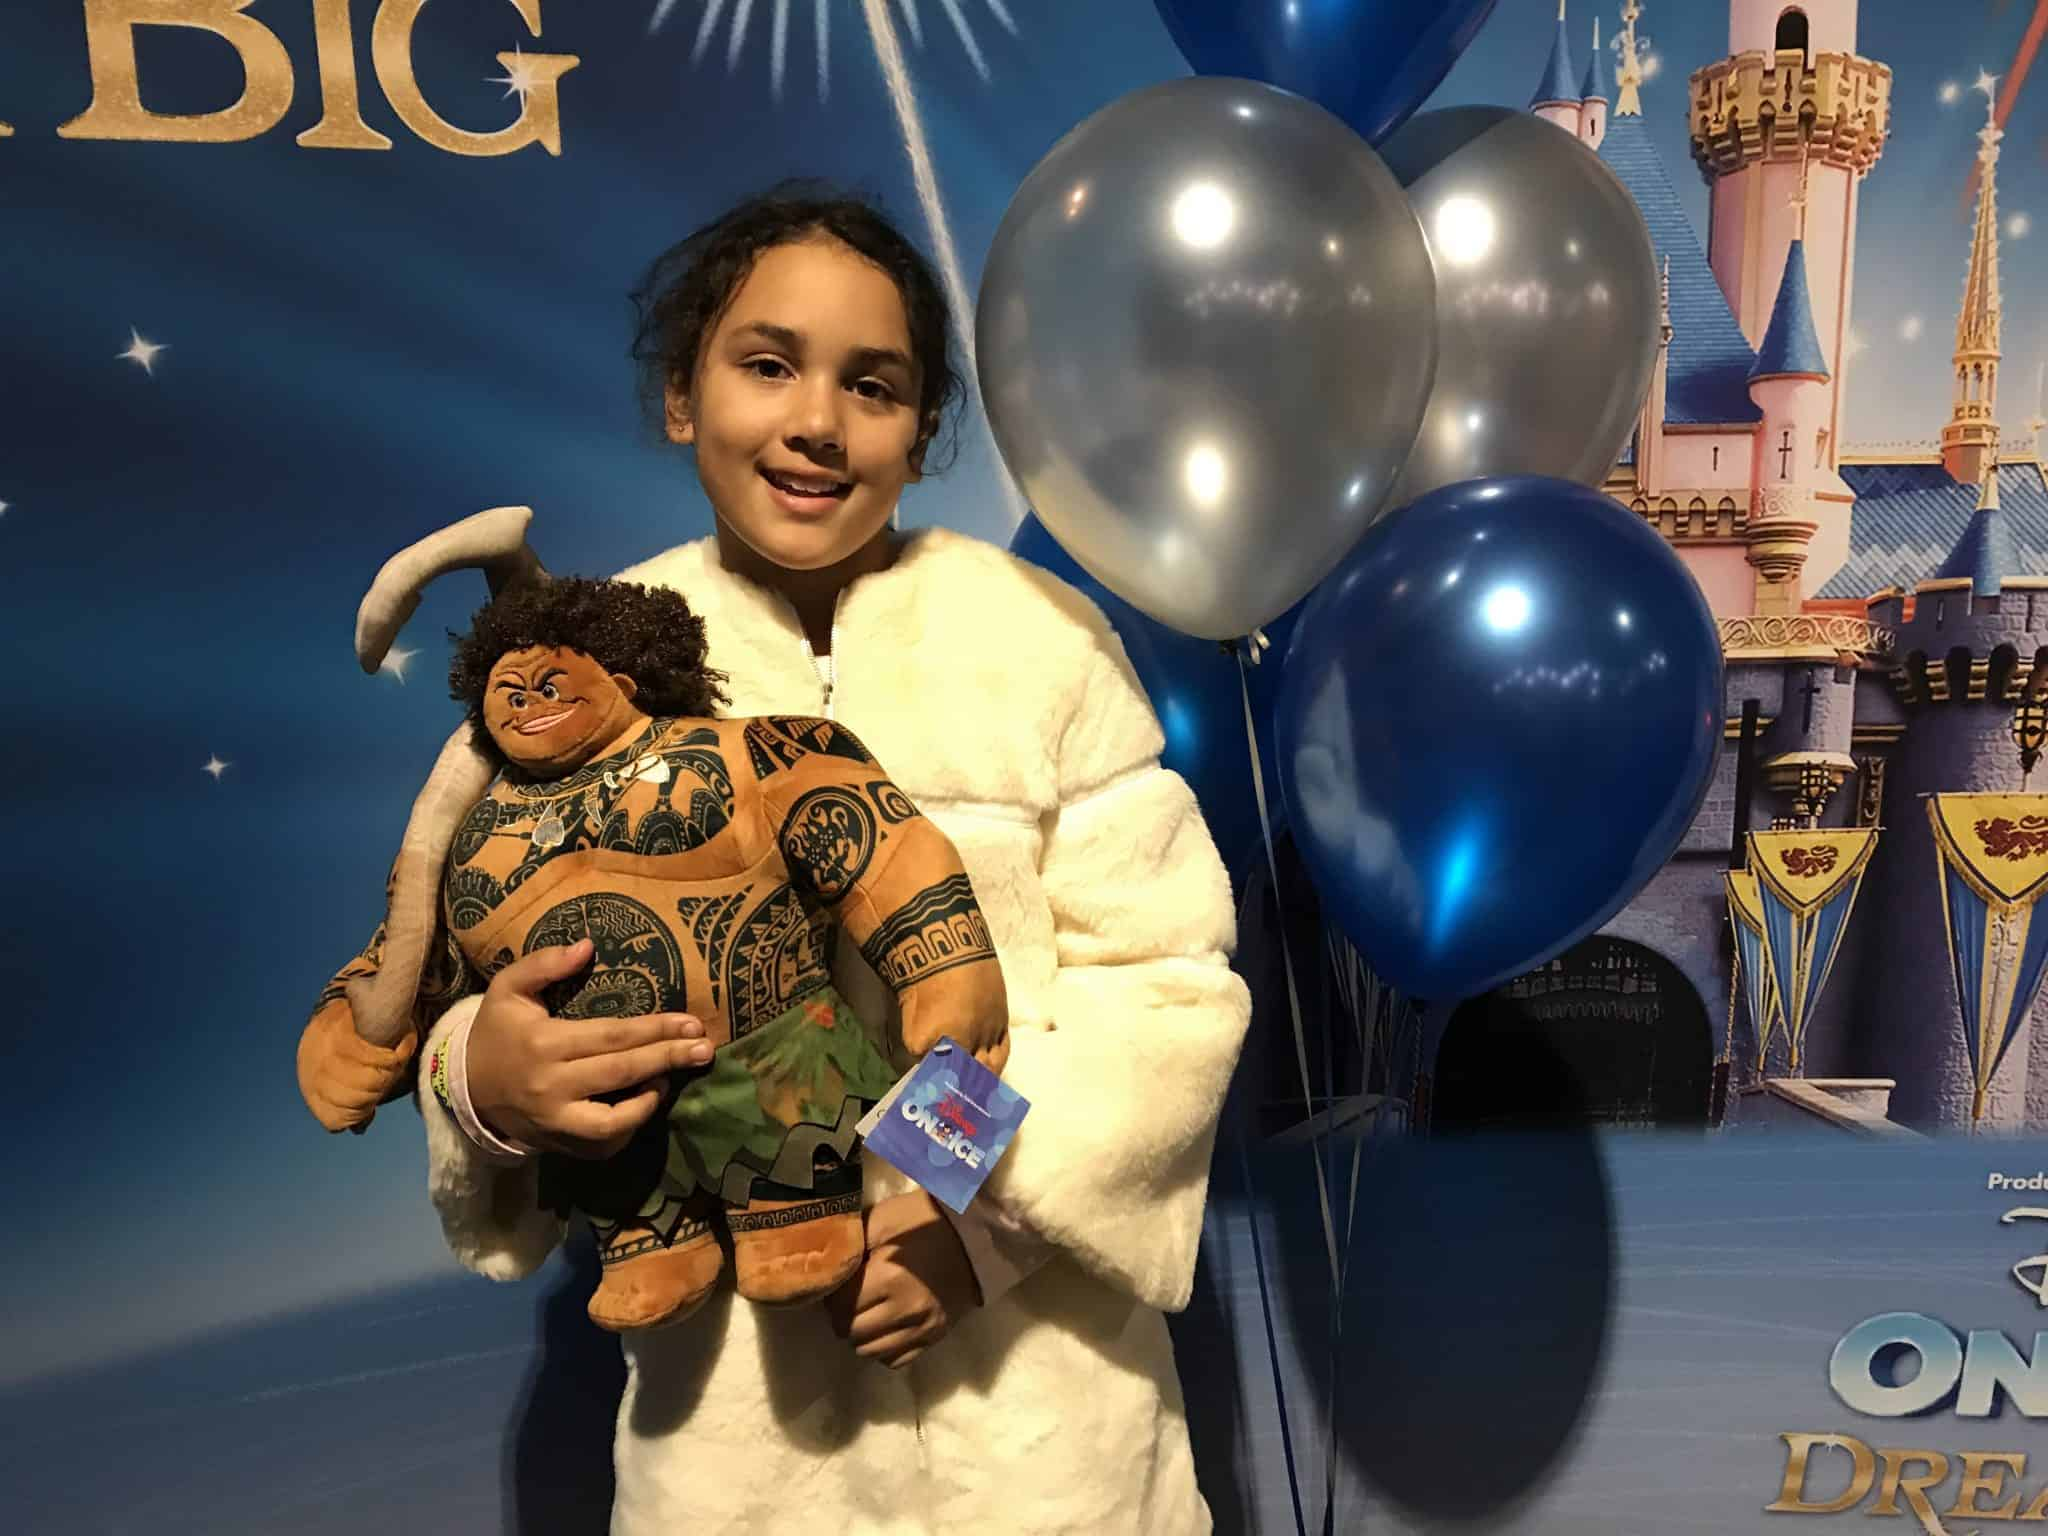 visiting disney on ice manchester